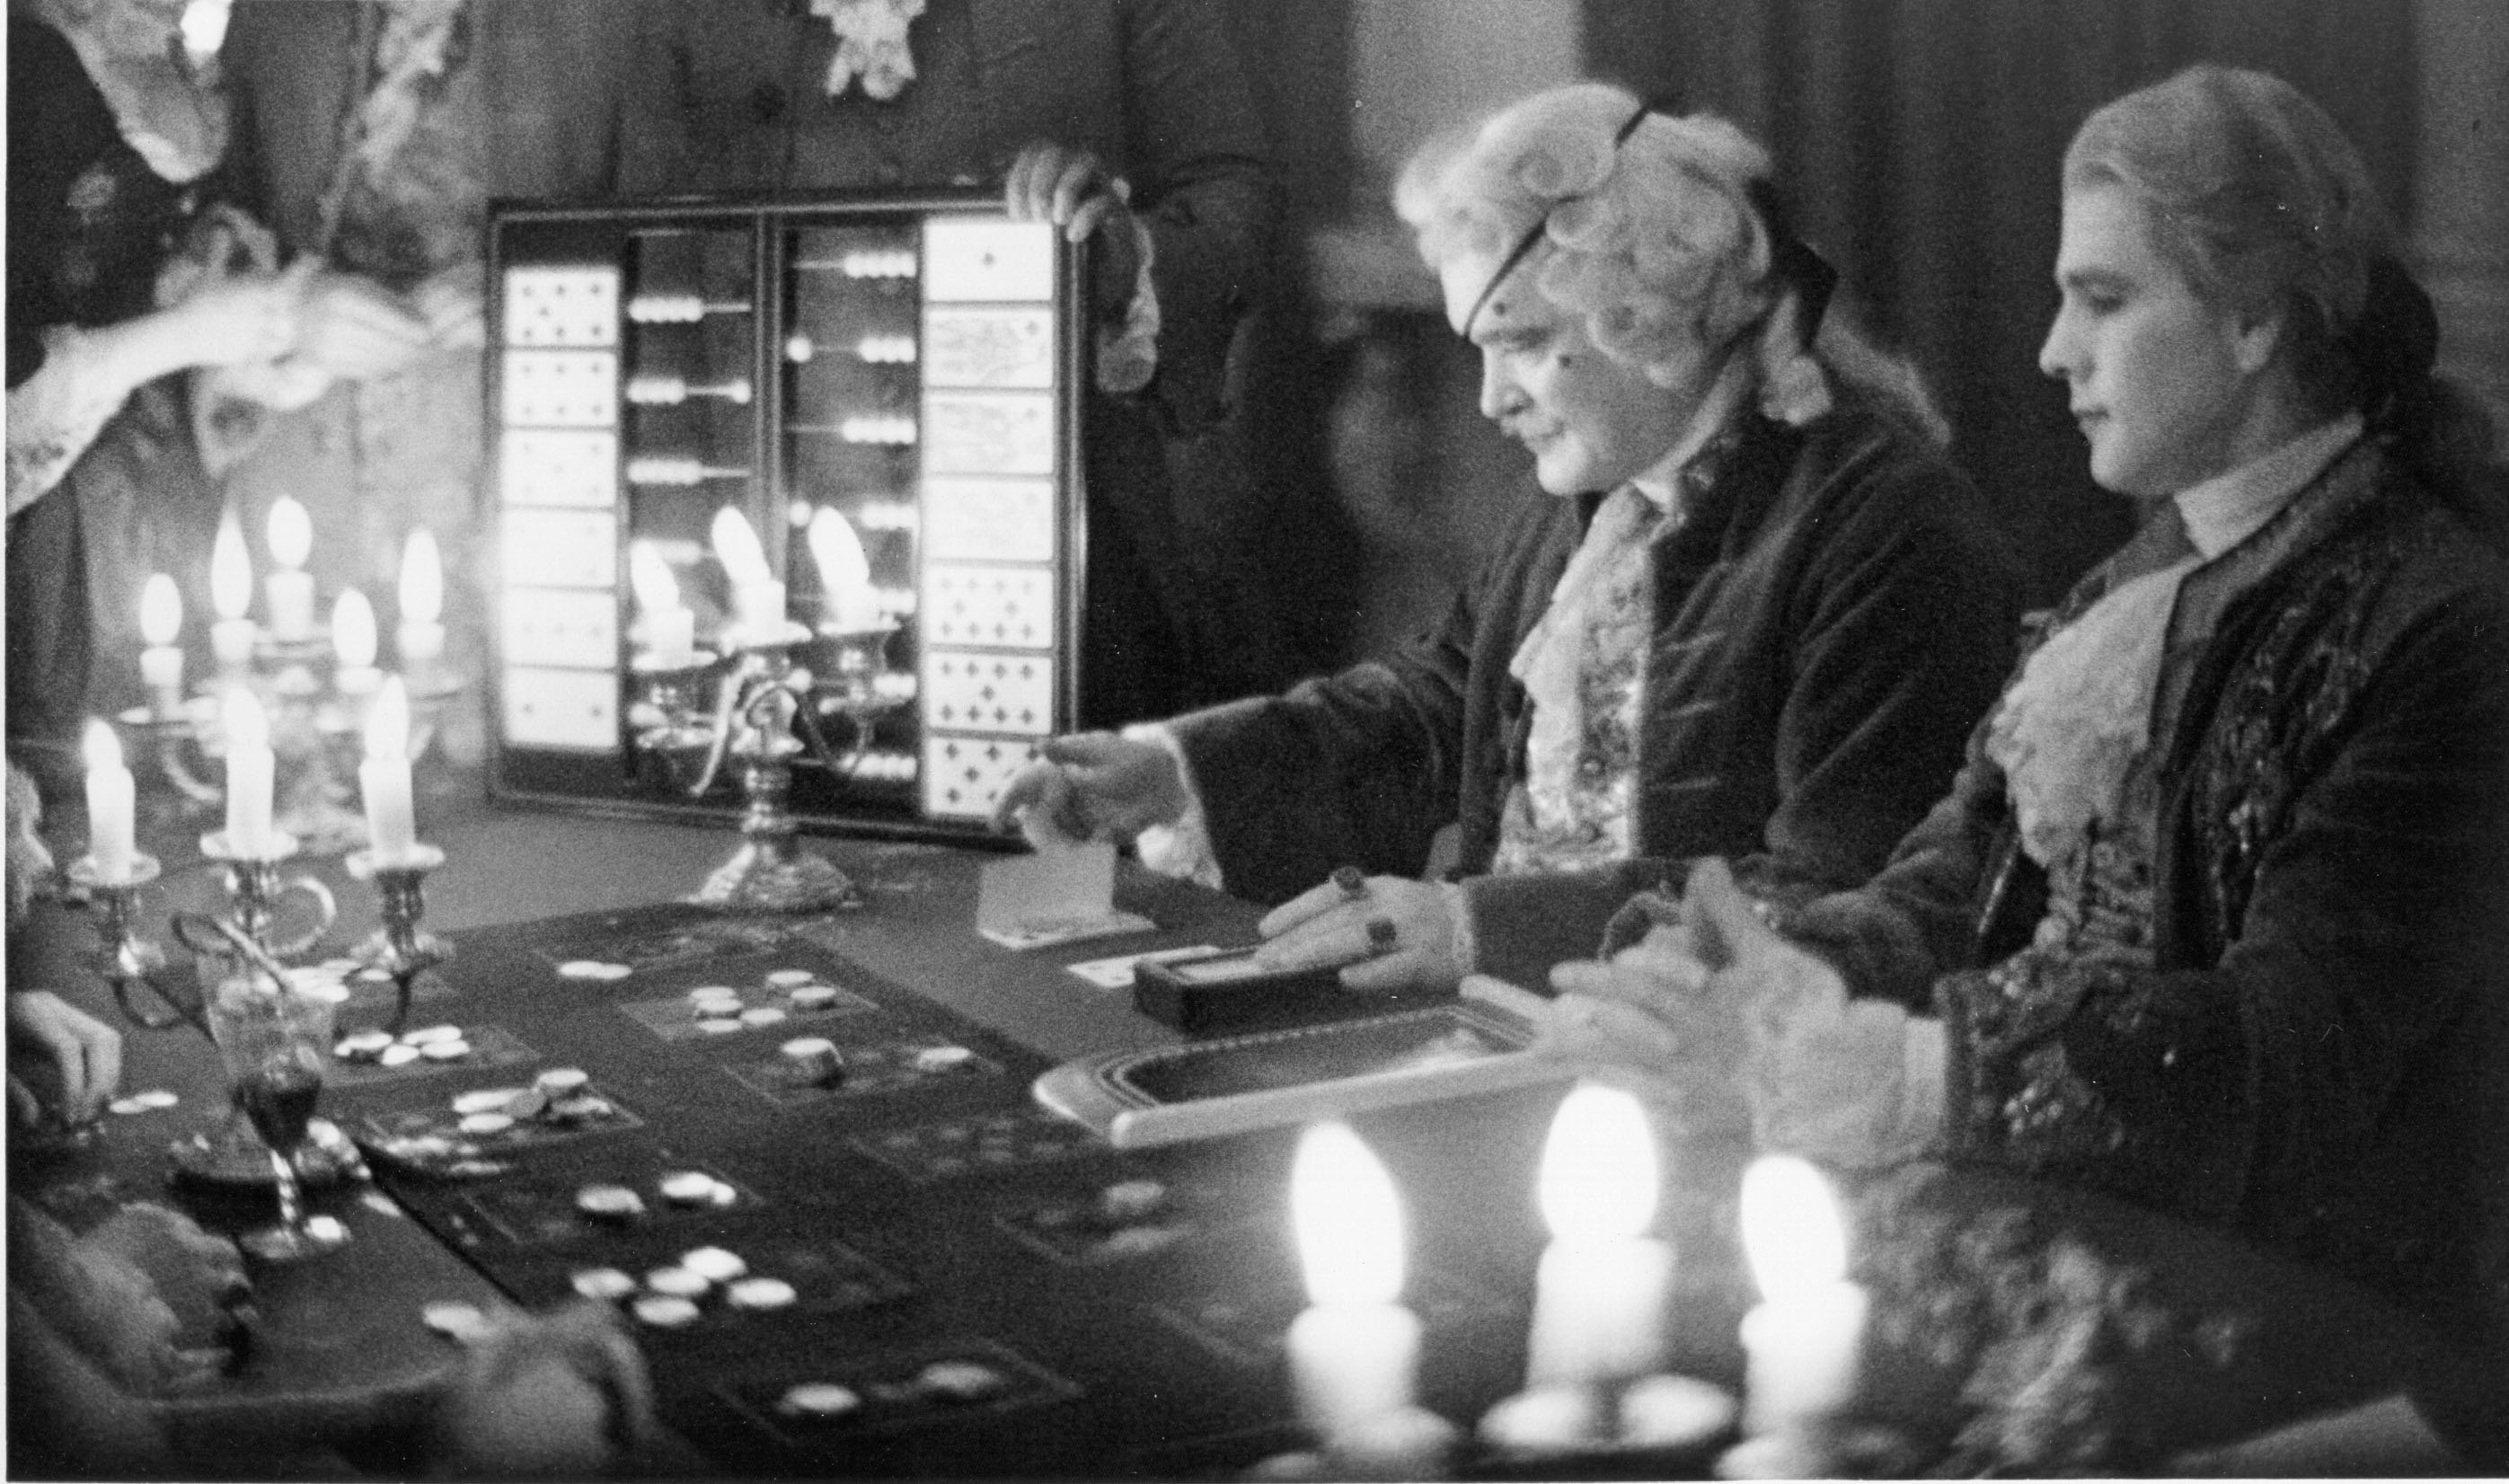 Patrick Magee and Ryan O'Neal in Barry Lyndon (1975)